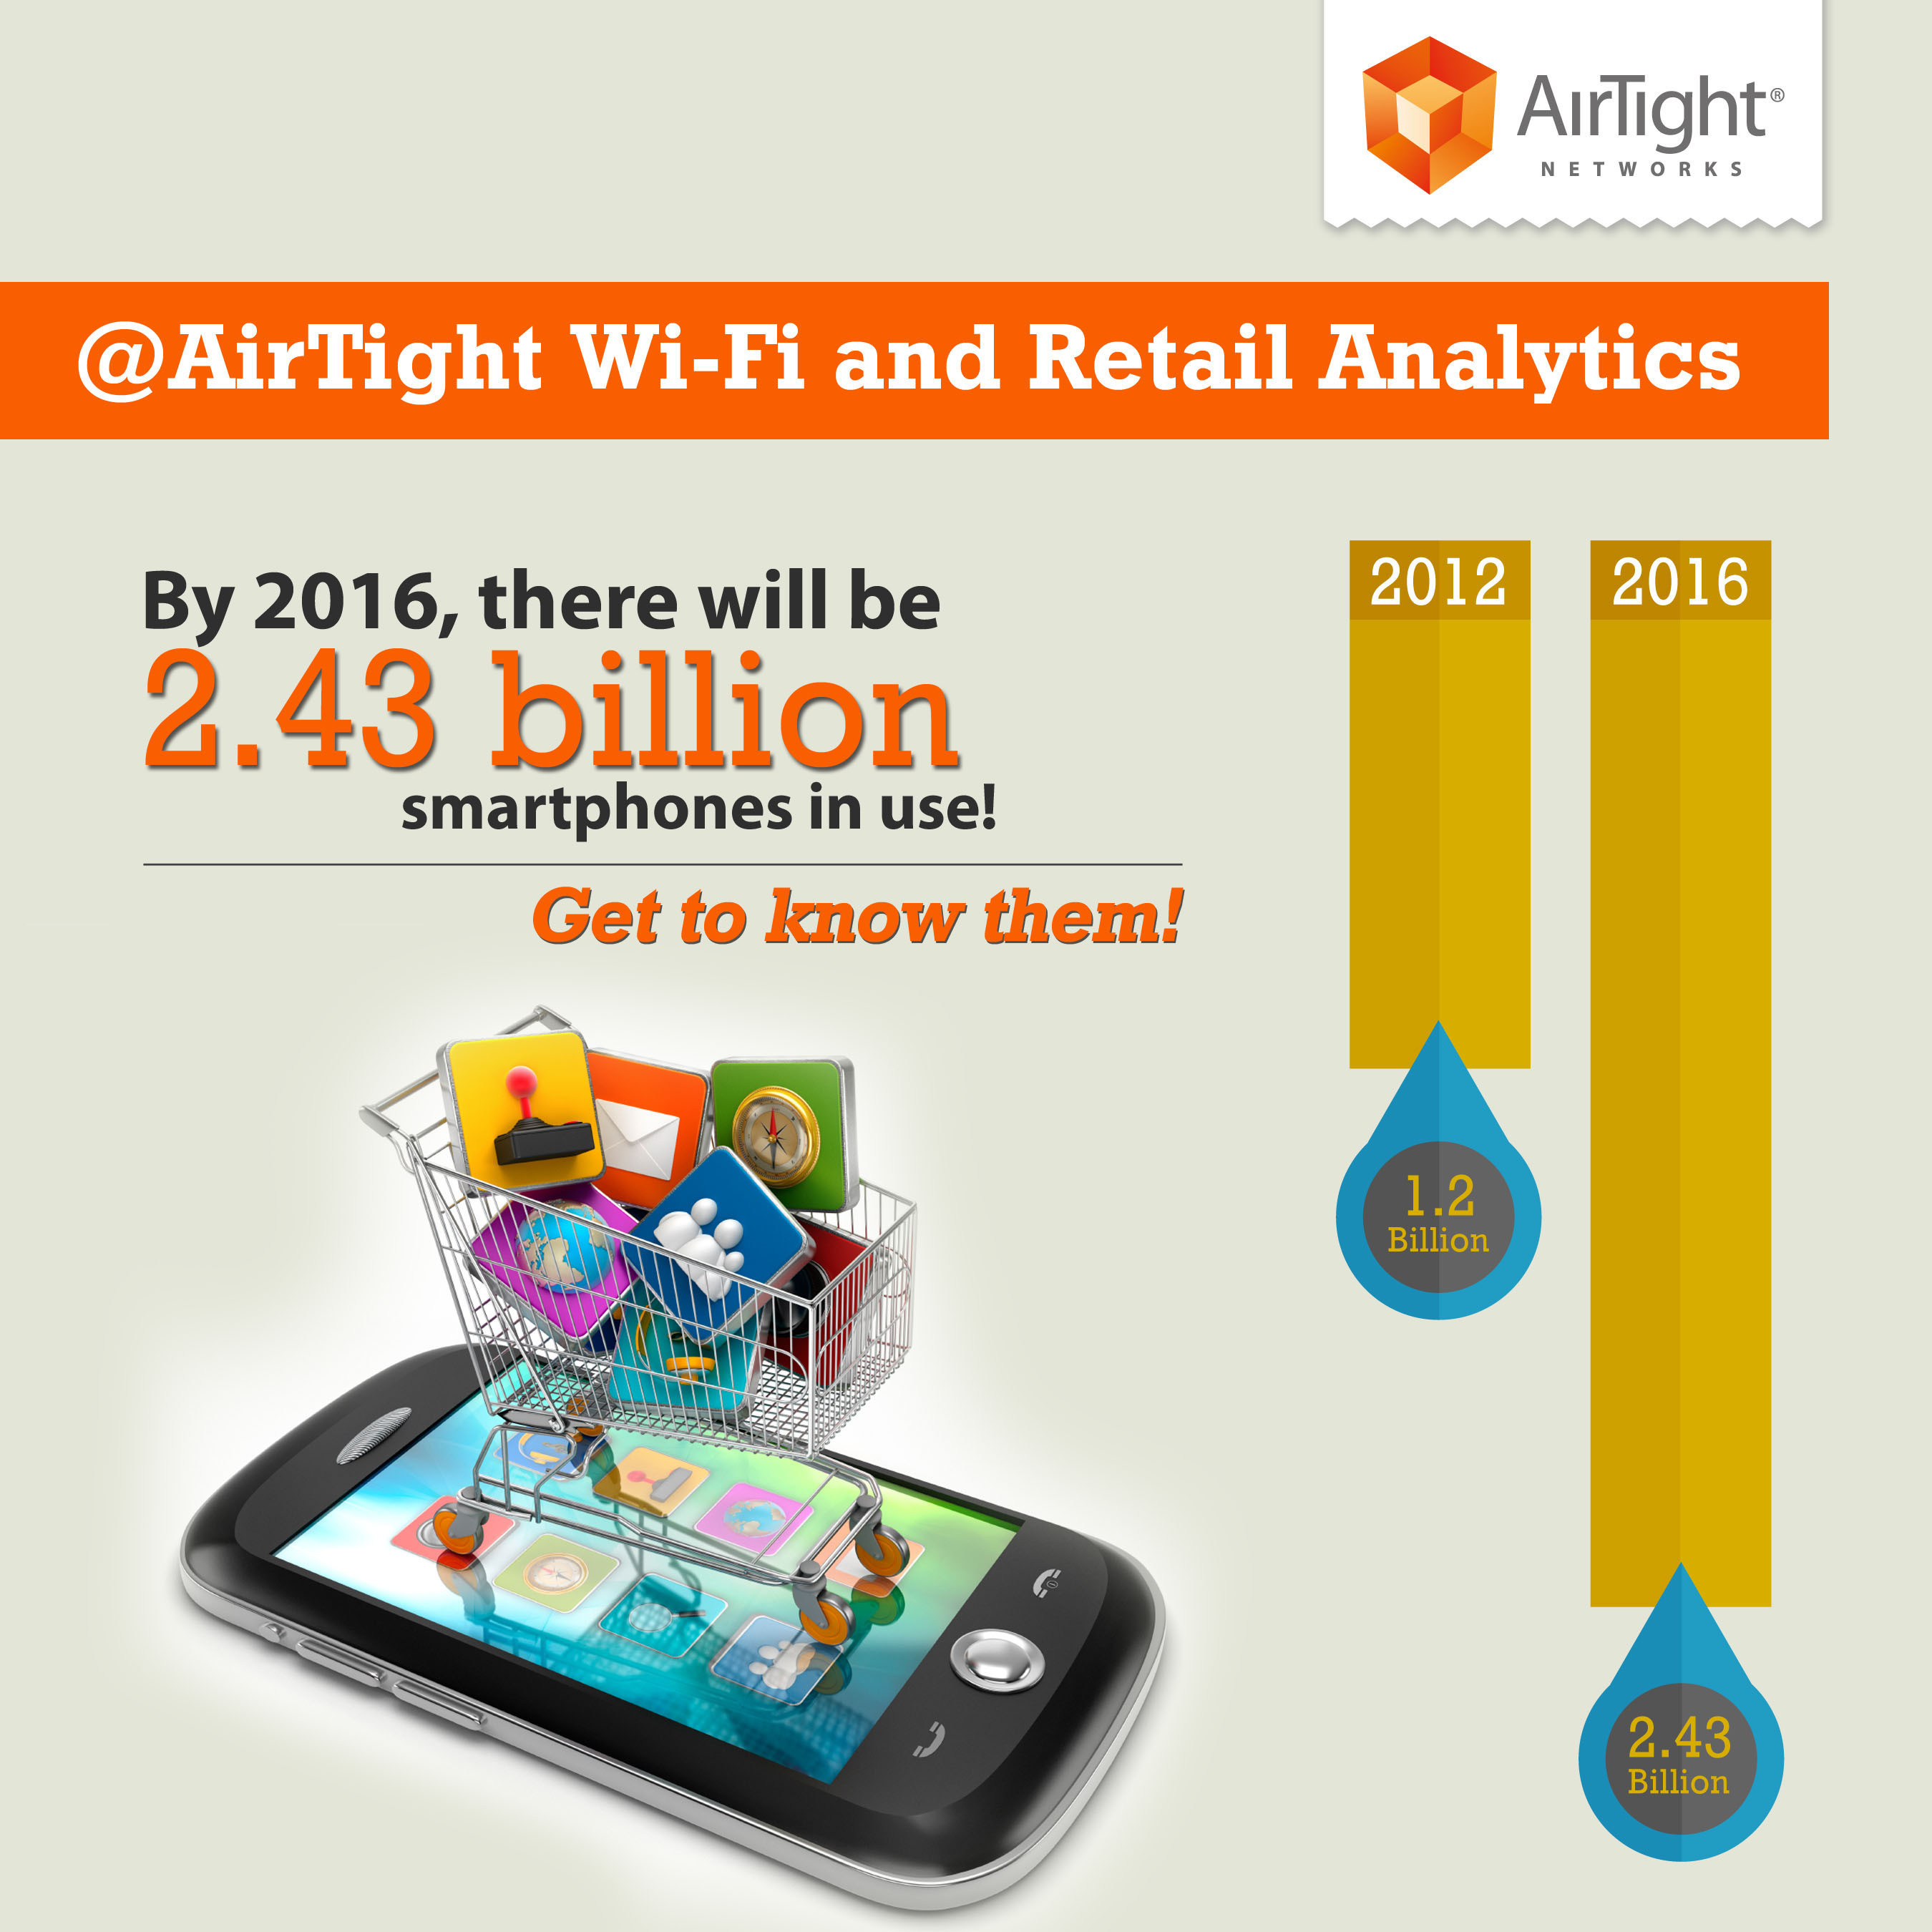 AirTight Launches Retail Wi-Fi Analytics Engine for In-Store Business Intelligence and Customer Engagement ...